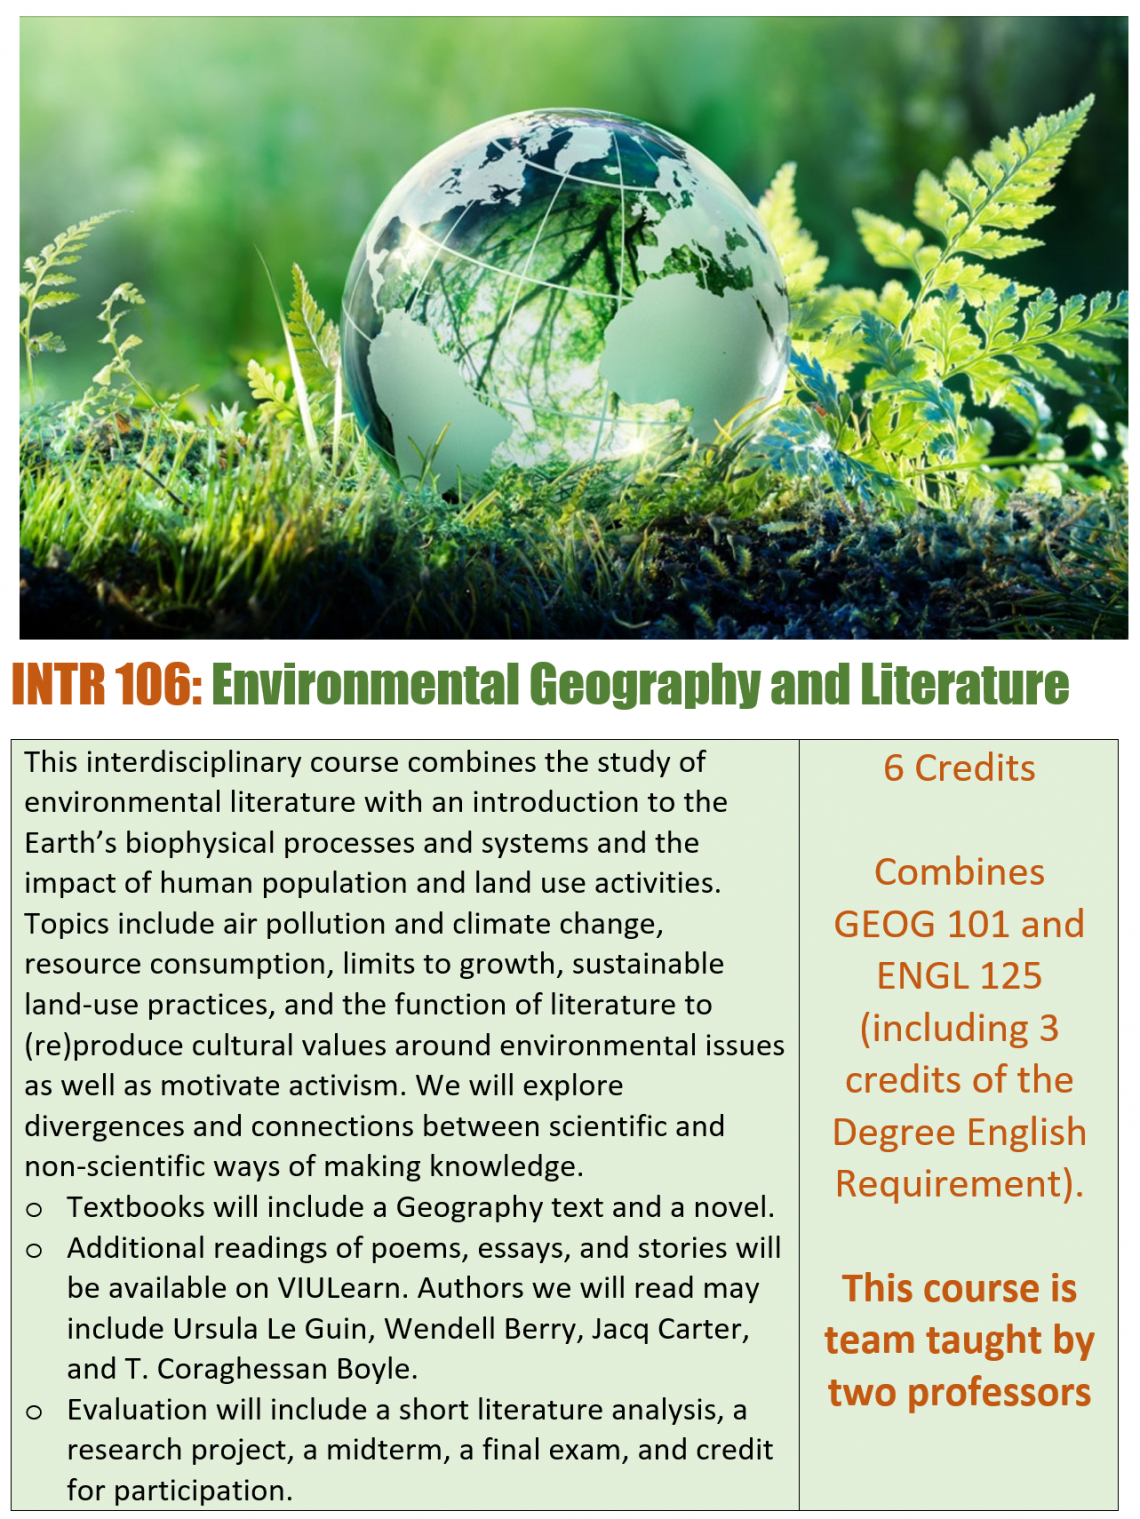 INTR 106 Poster: This interdisciplinary course combines the study of environmental literature with an introduction to the Earth's biophysical processes and systems and the impact of human population and land use activities.